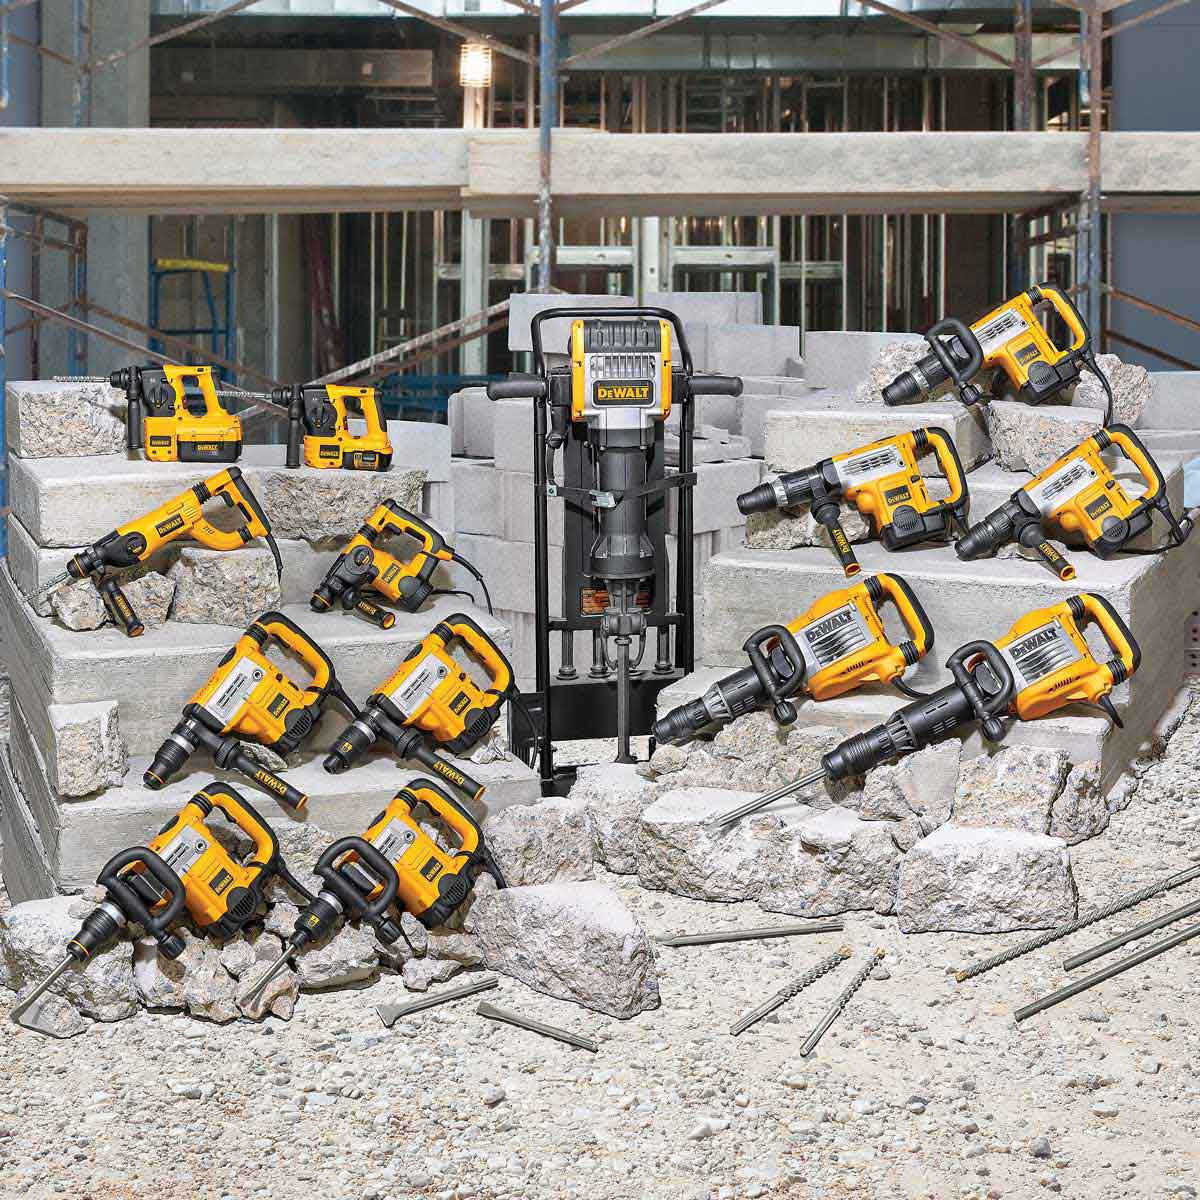 Dewalt concrete hammer group